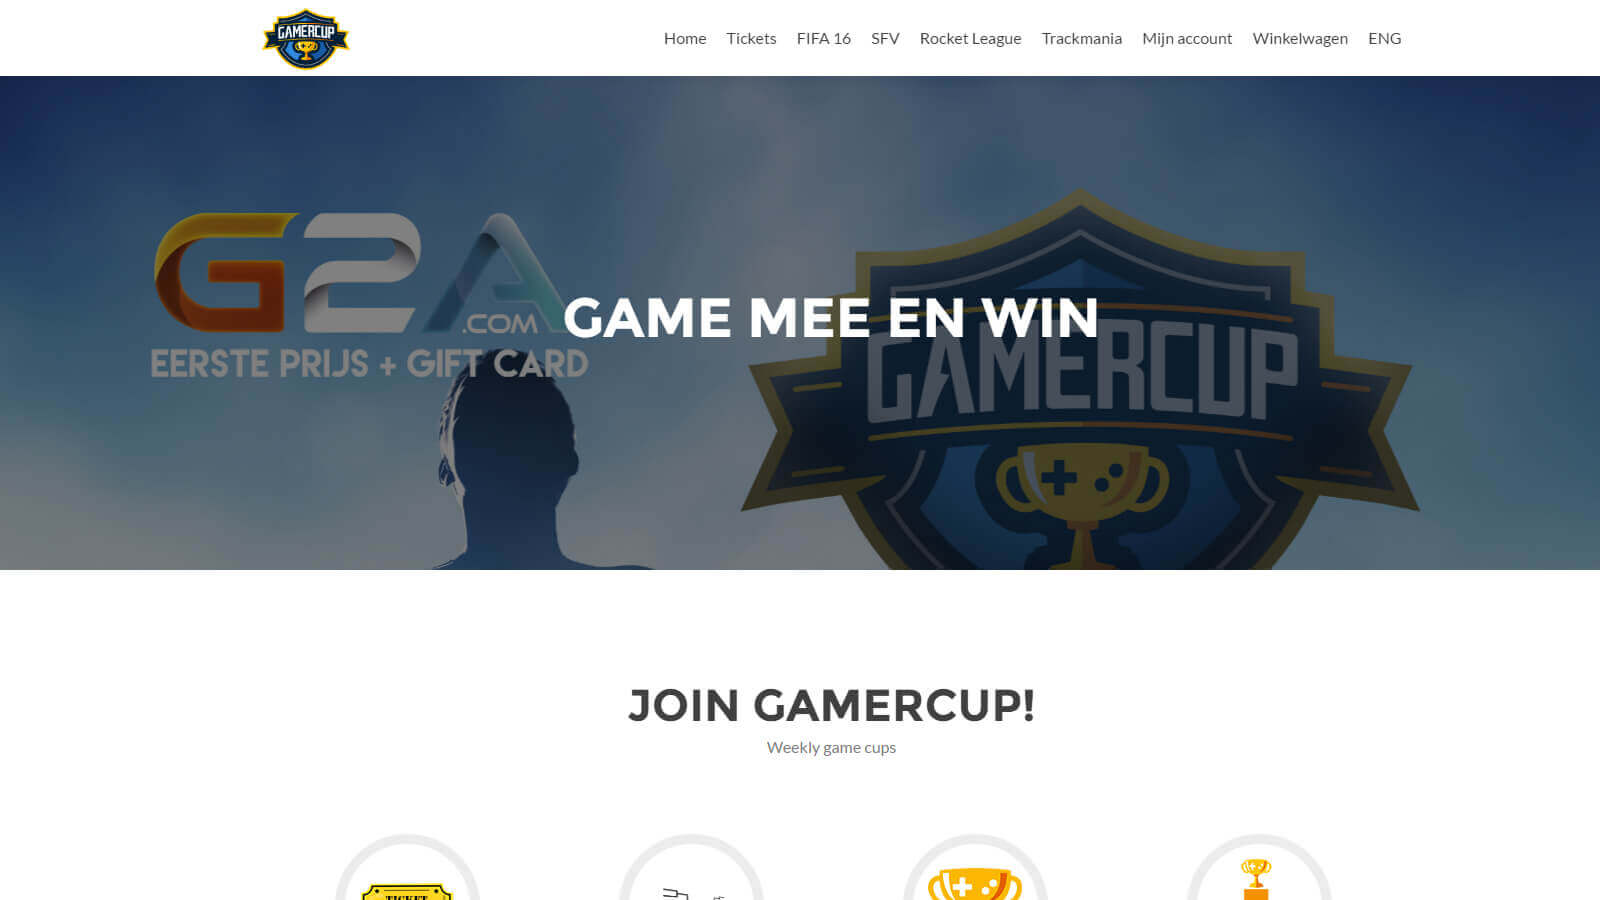 - gamercup - Websites